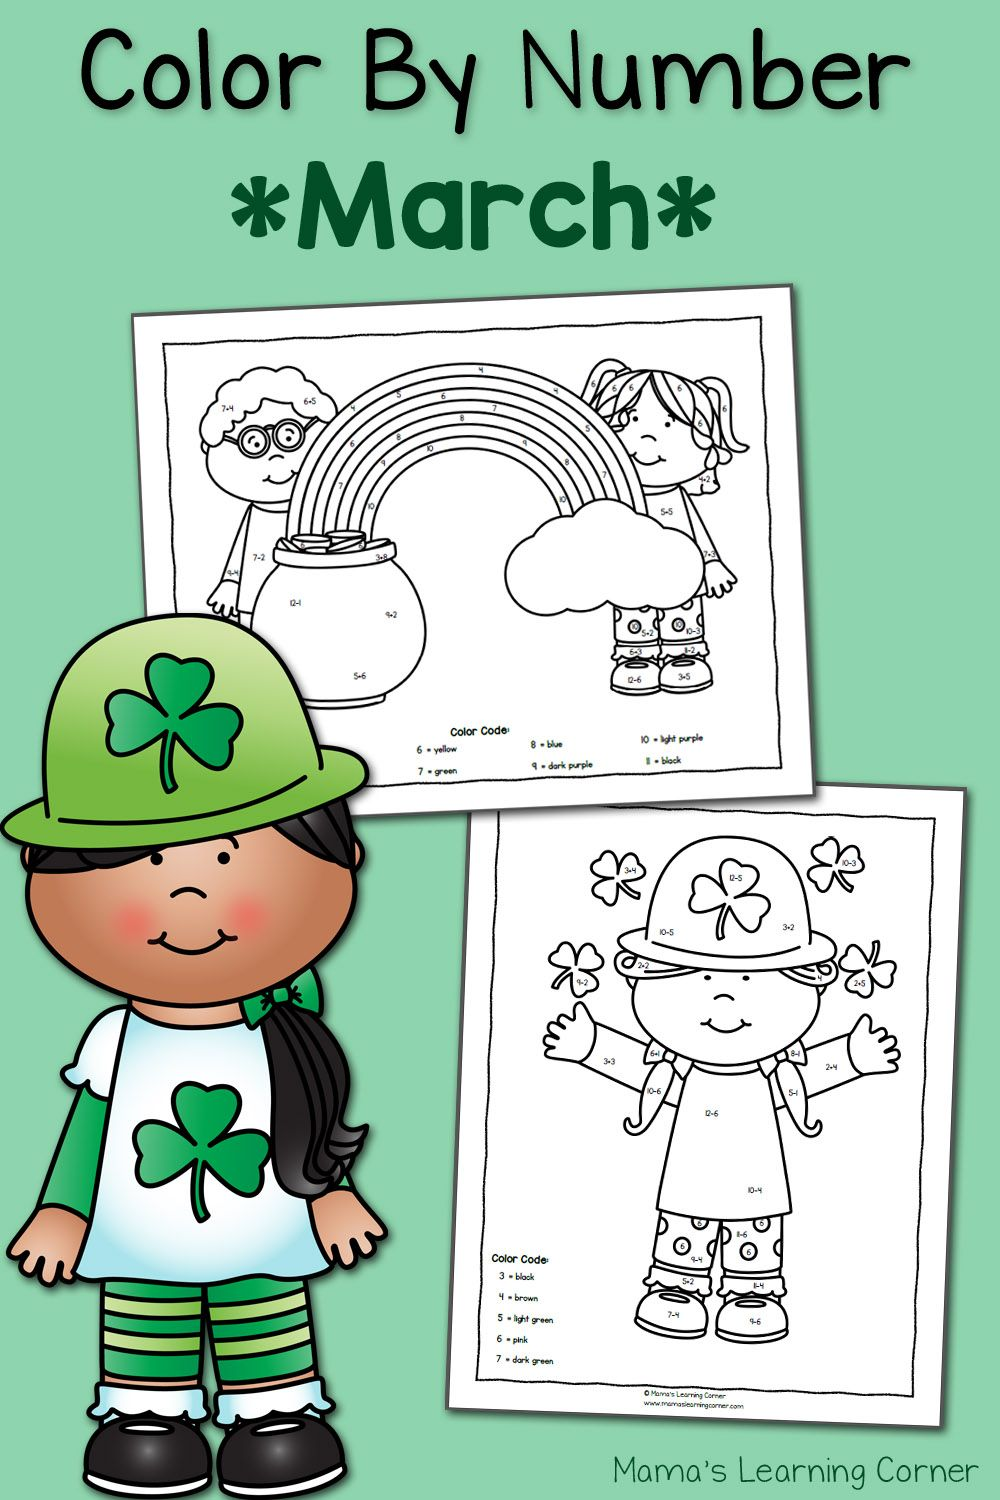 Color by Number Worksheets for March: St. Patrick\'s Day | Number ...